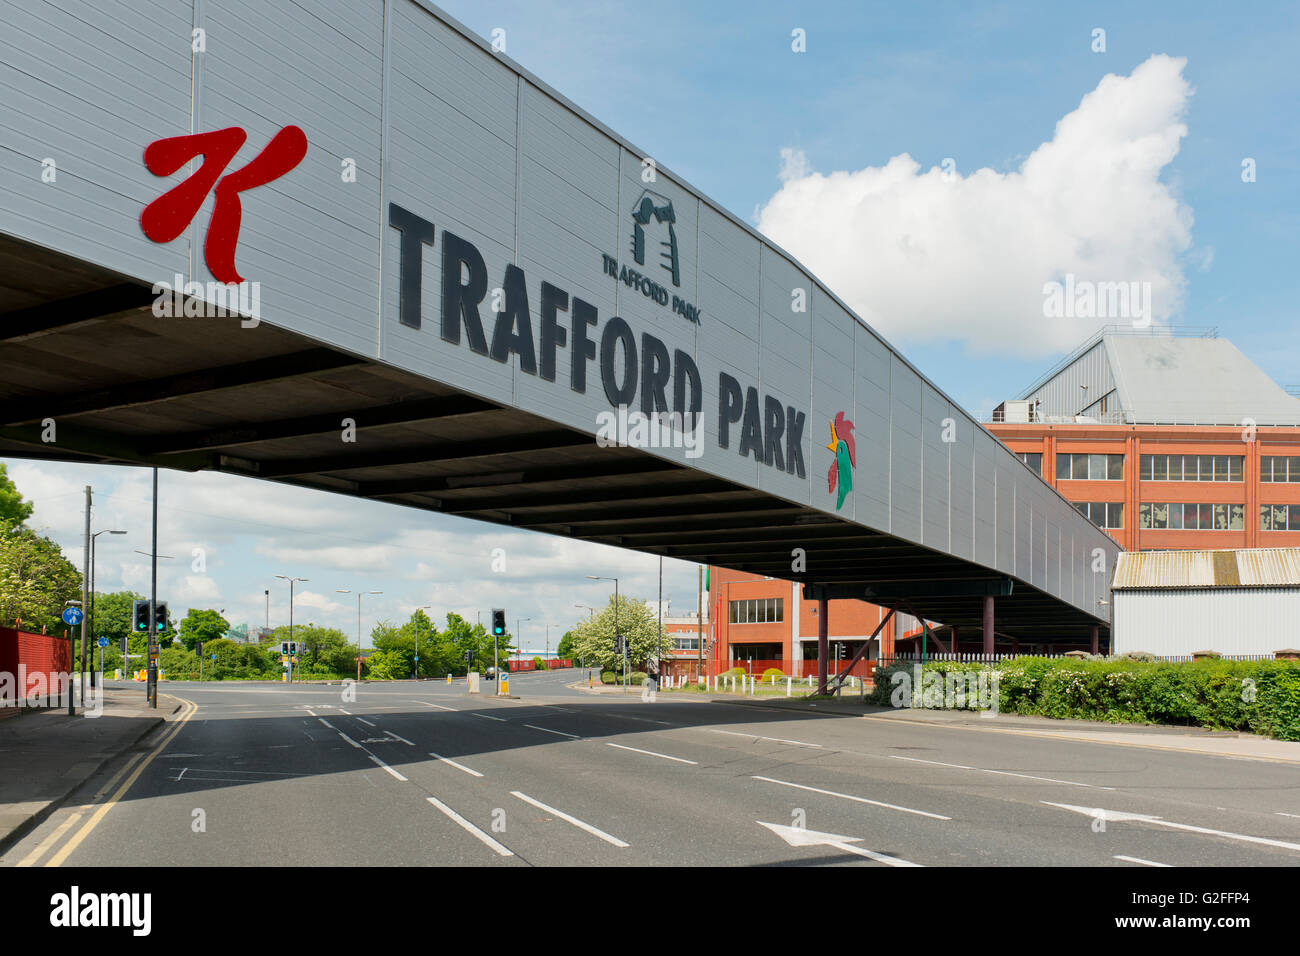 The bridge which connects the Kellogg's manufacturing plant to its warehouse on Park Road in Trafford Park in - Stock Image